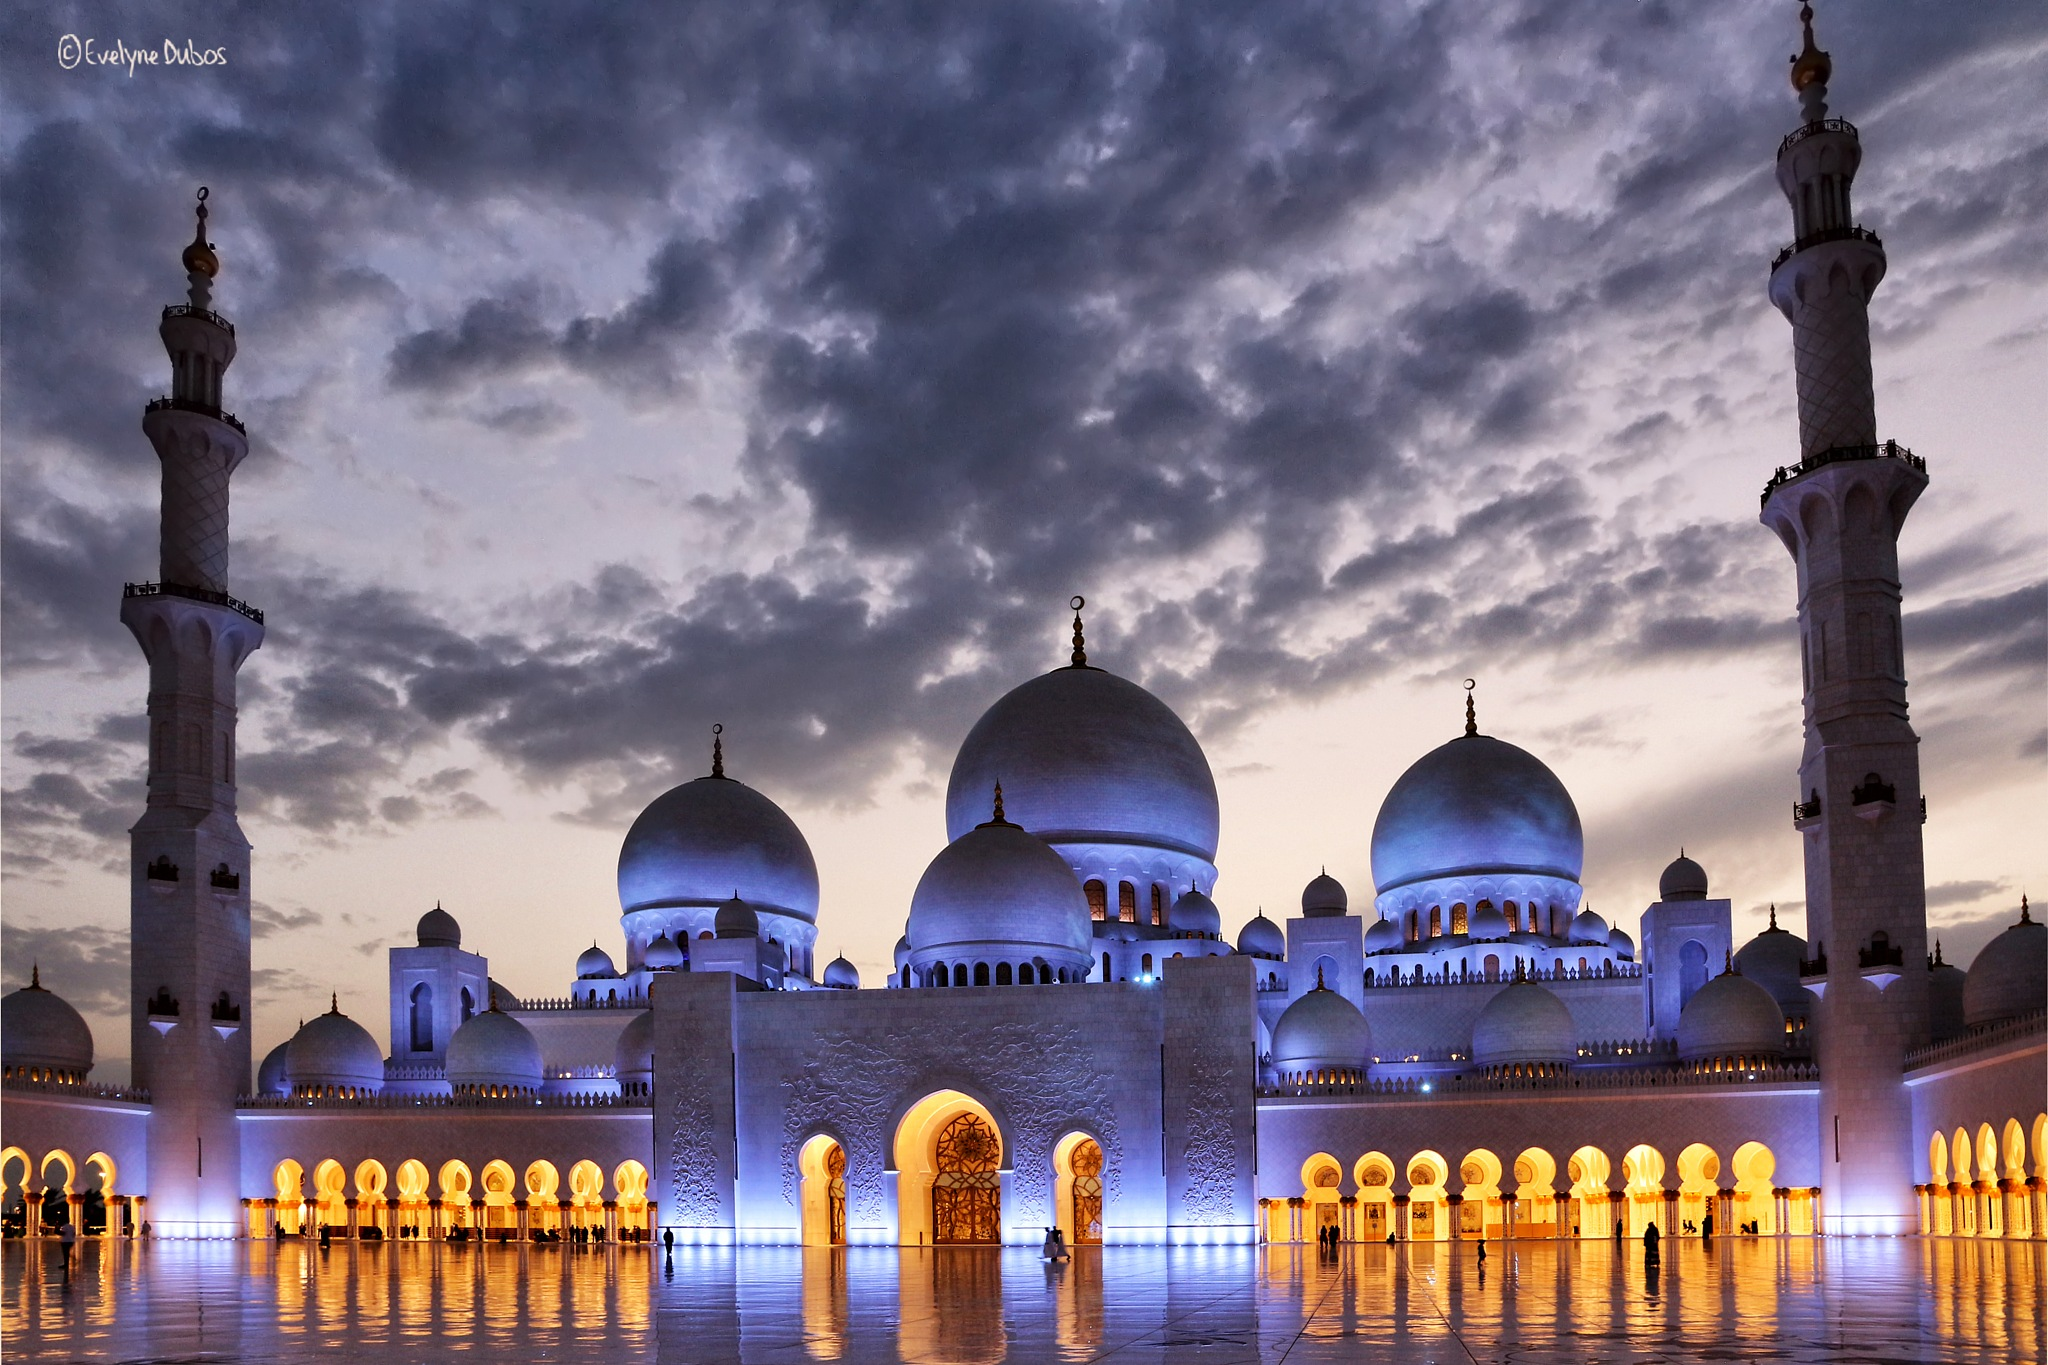 Sheikh Zayed Grand Mosque. by Evelyne Dubos